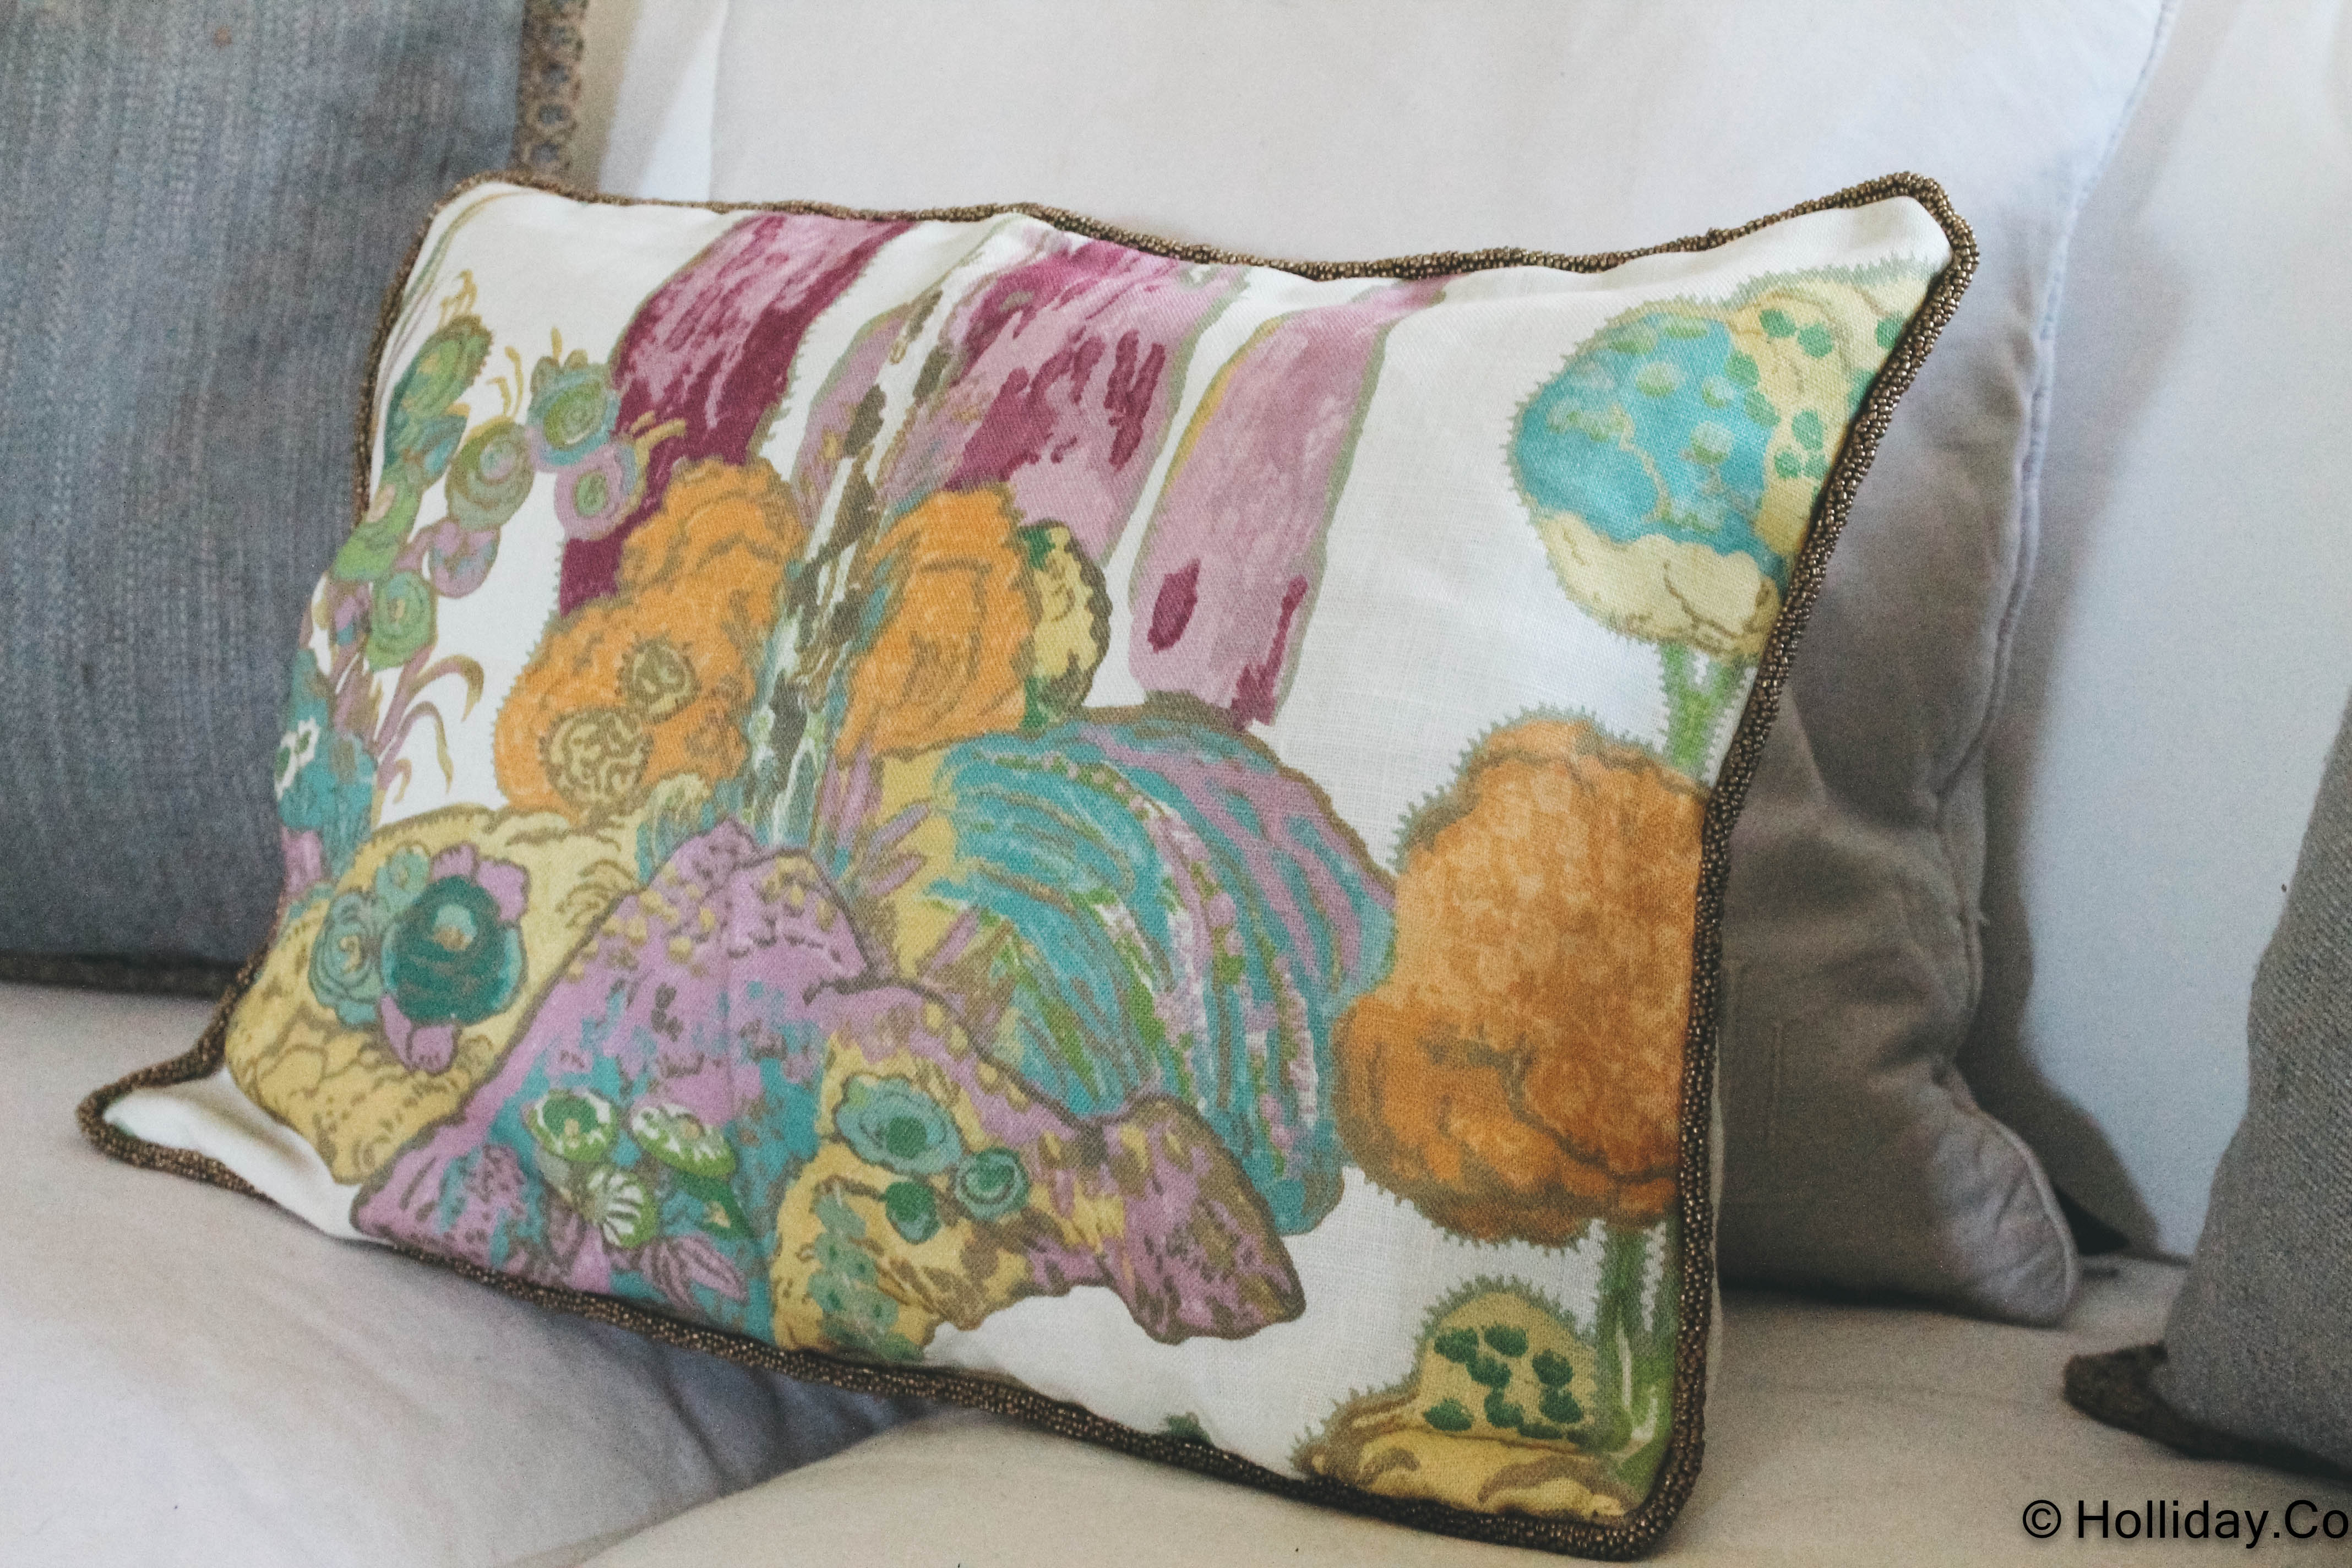 etsy shop, whitney j decor, custom pillows